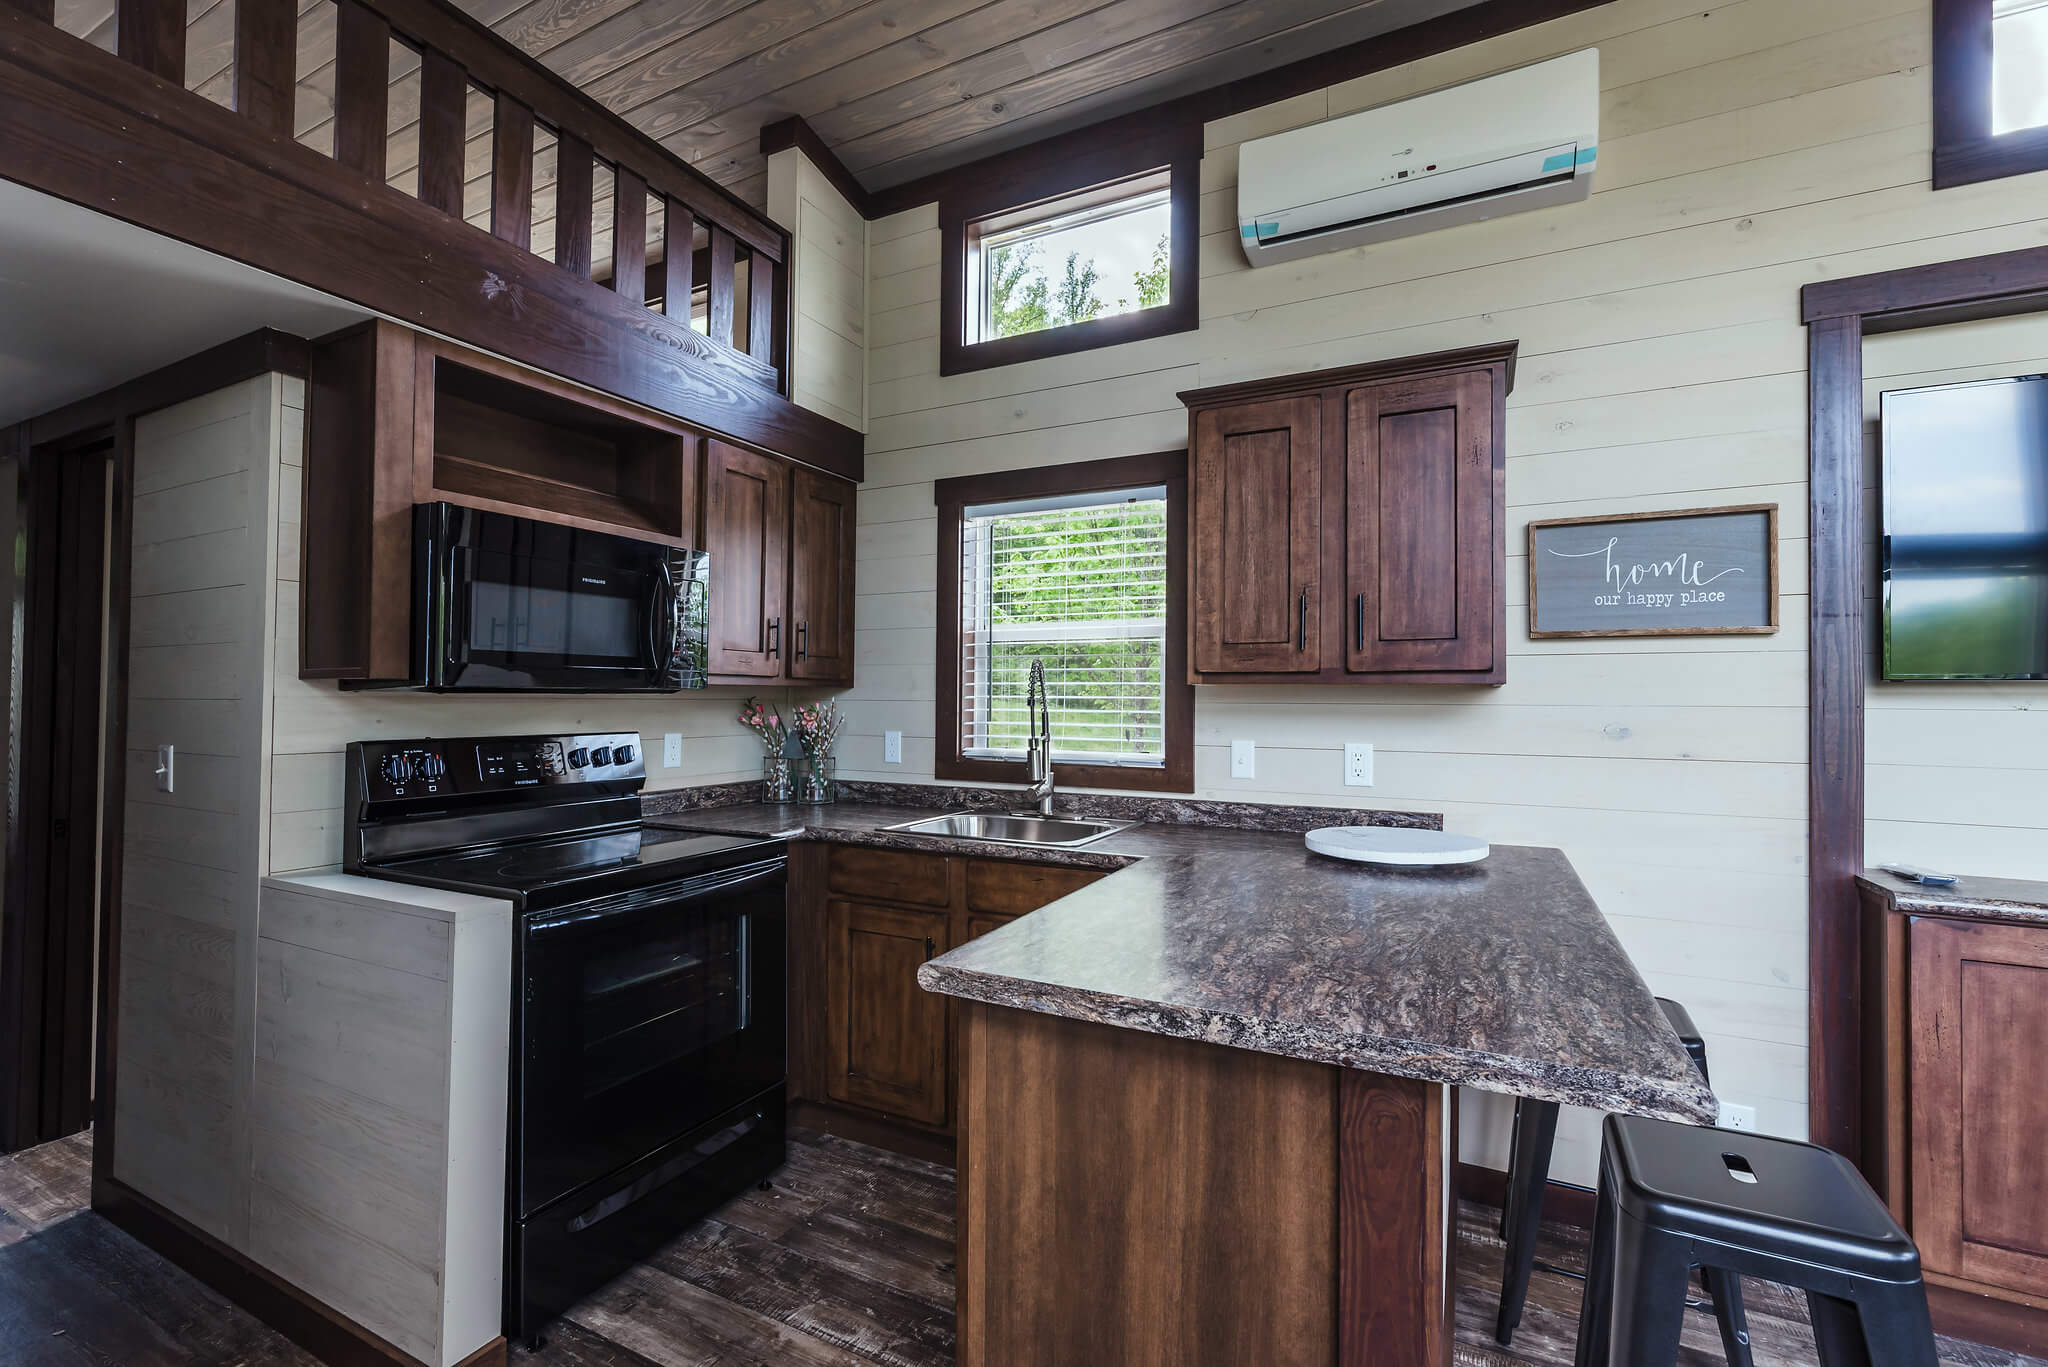 Kitchen of tiny home at Waterside at Blue Ridge